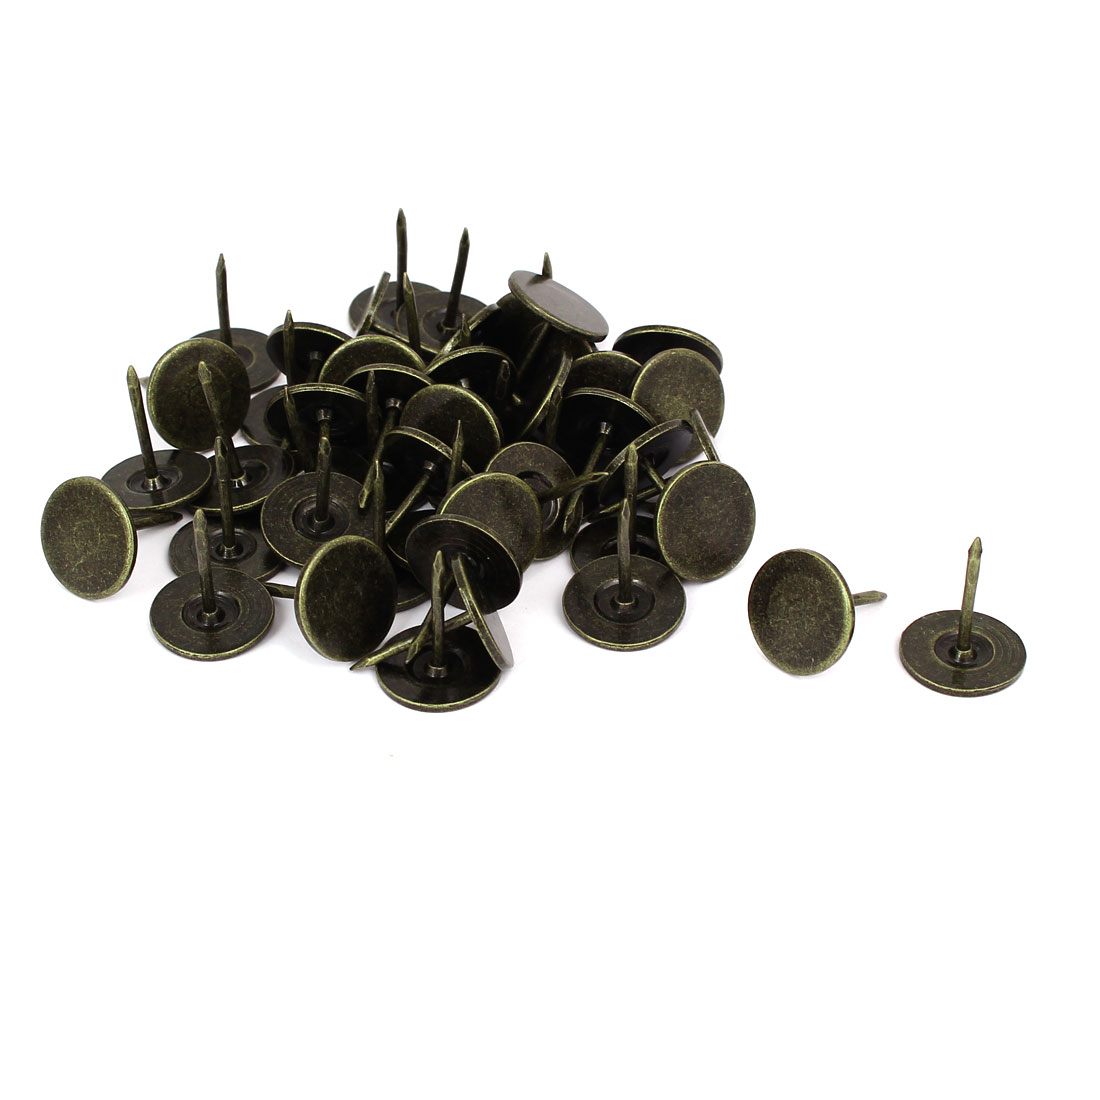 16mm Dia 20mm Height Round Flat Head Upholstery Tack Nail Bronze Tone 50pcs